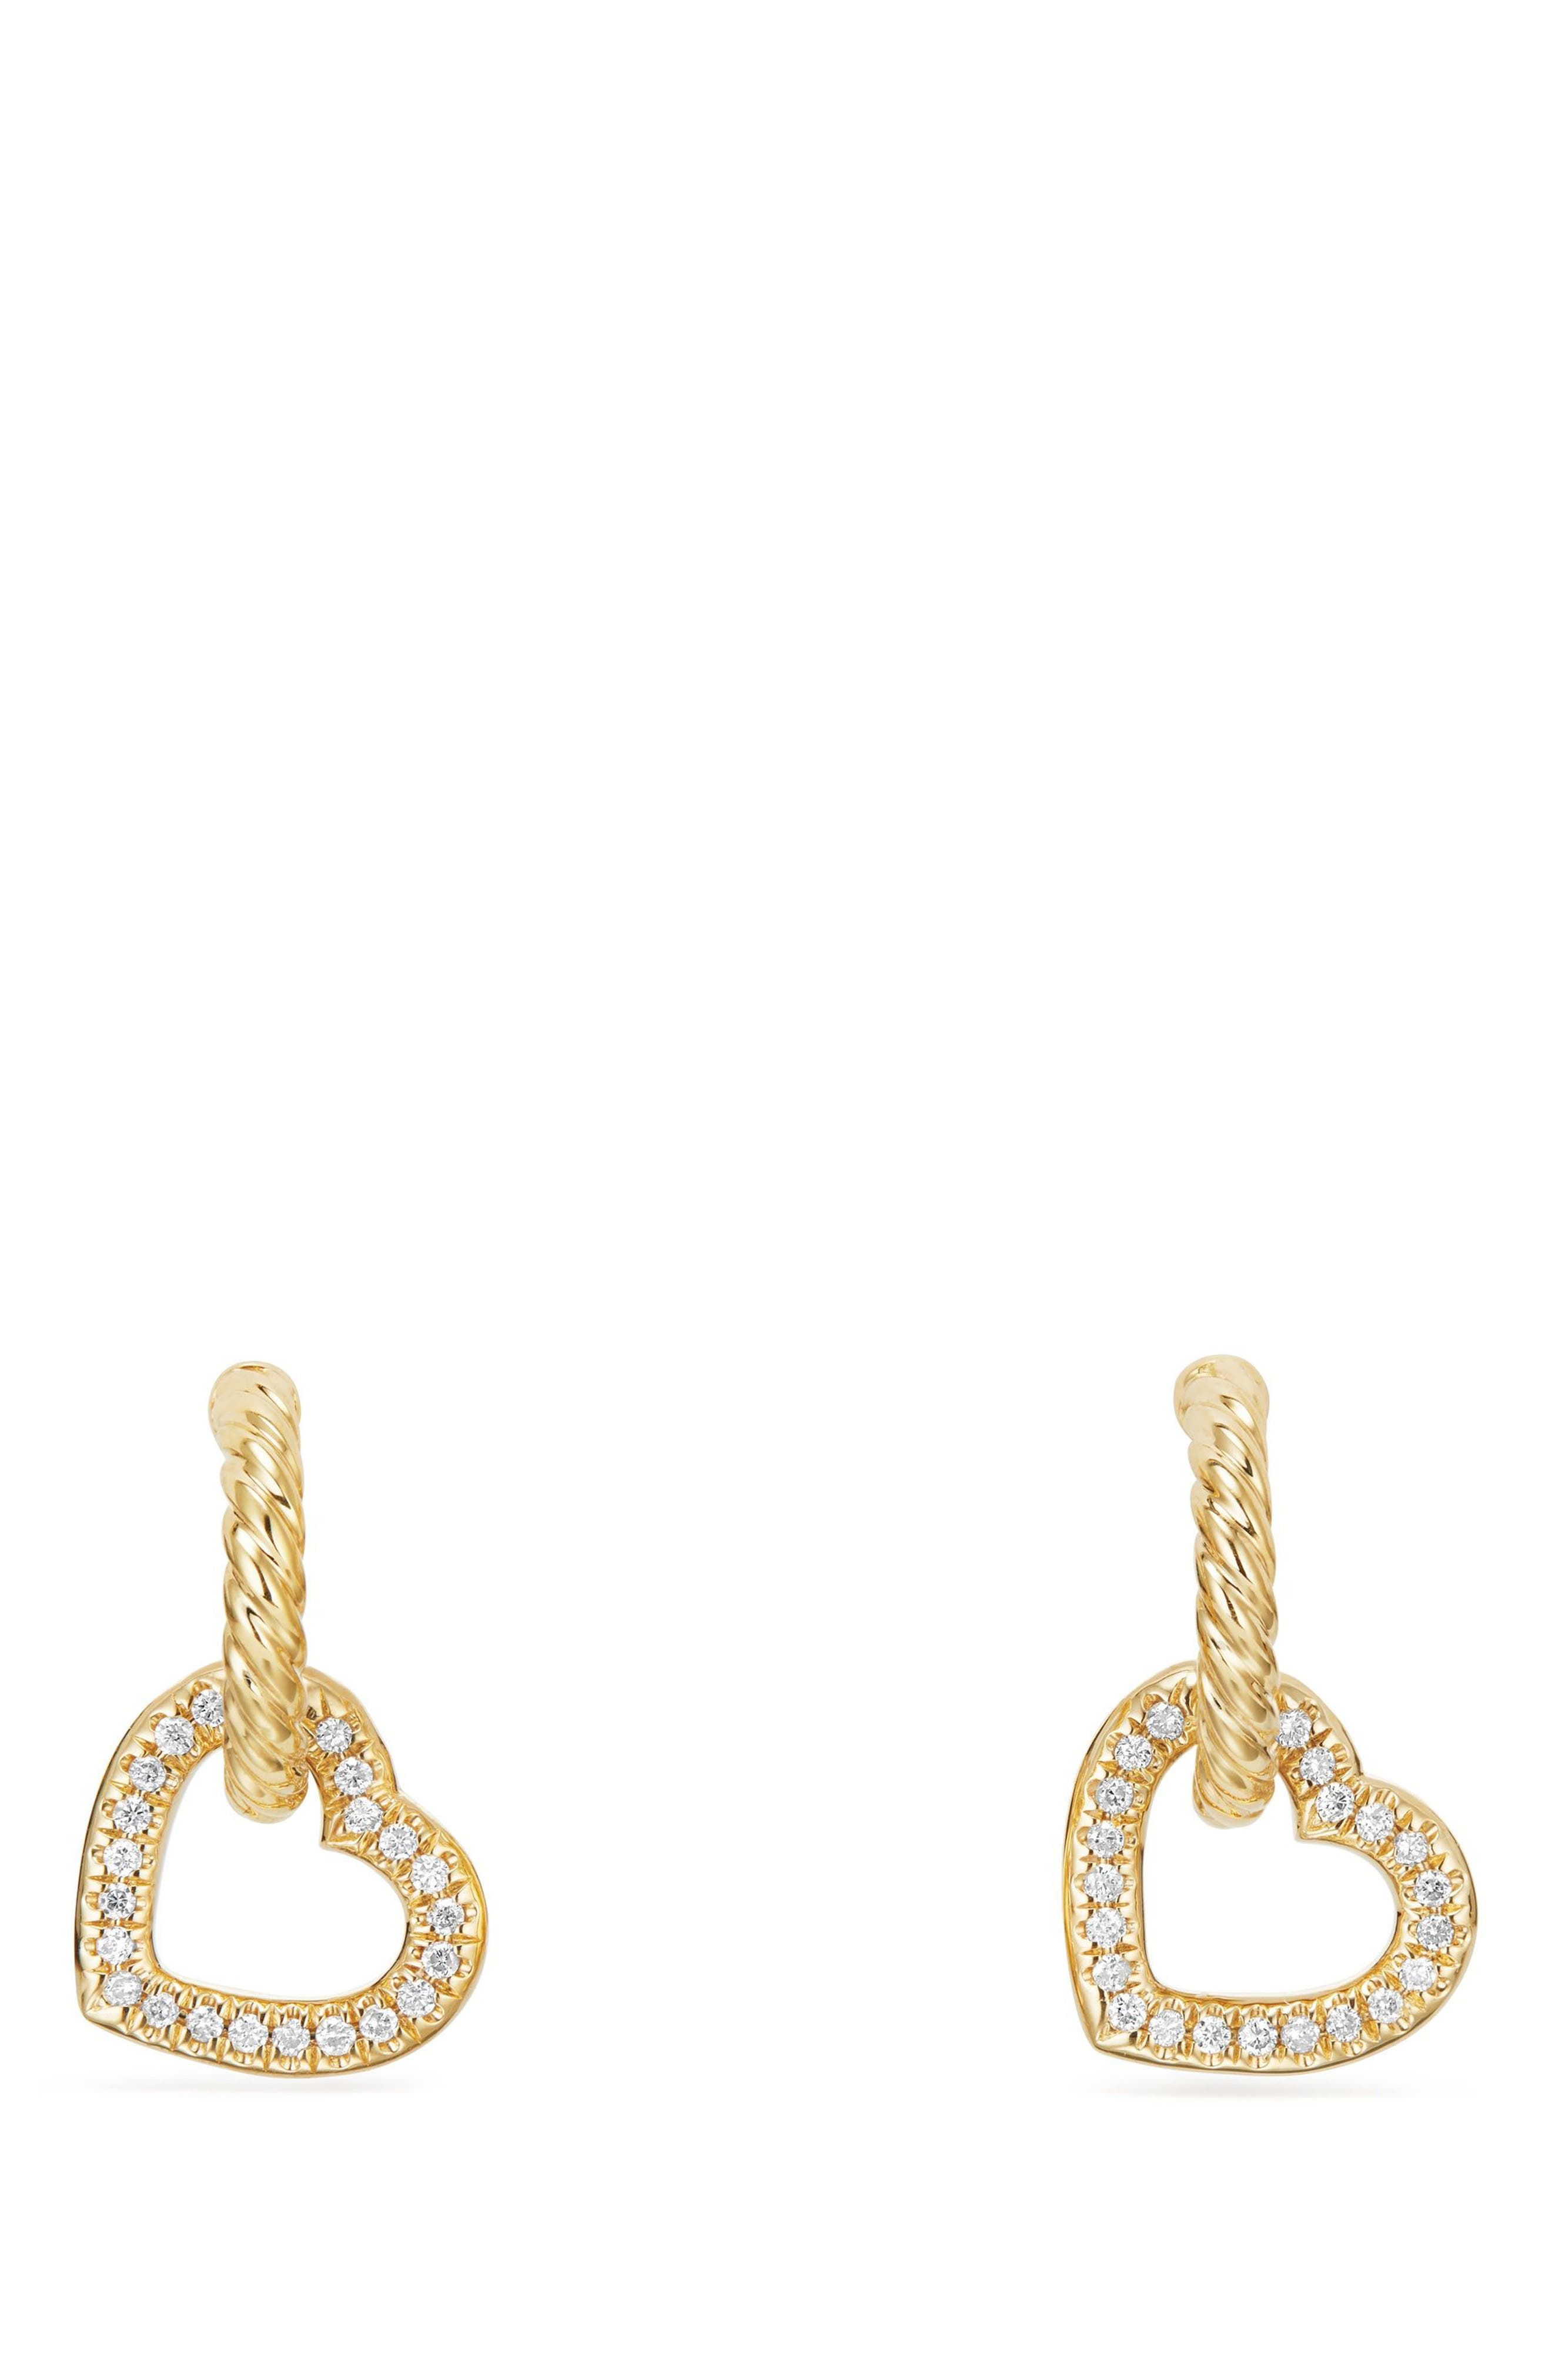 Heart Drop Earrings with Diamonds in 18K Gold,                             Alternate thumbnail 2, color,                             GOLD